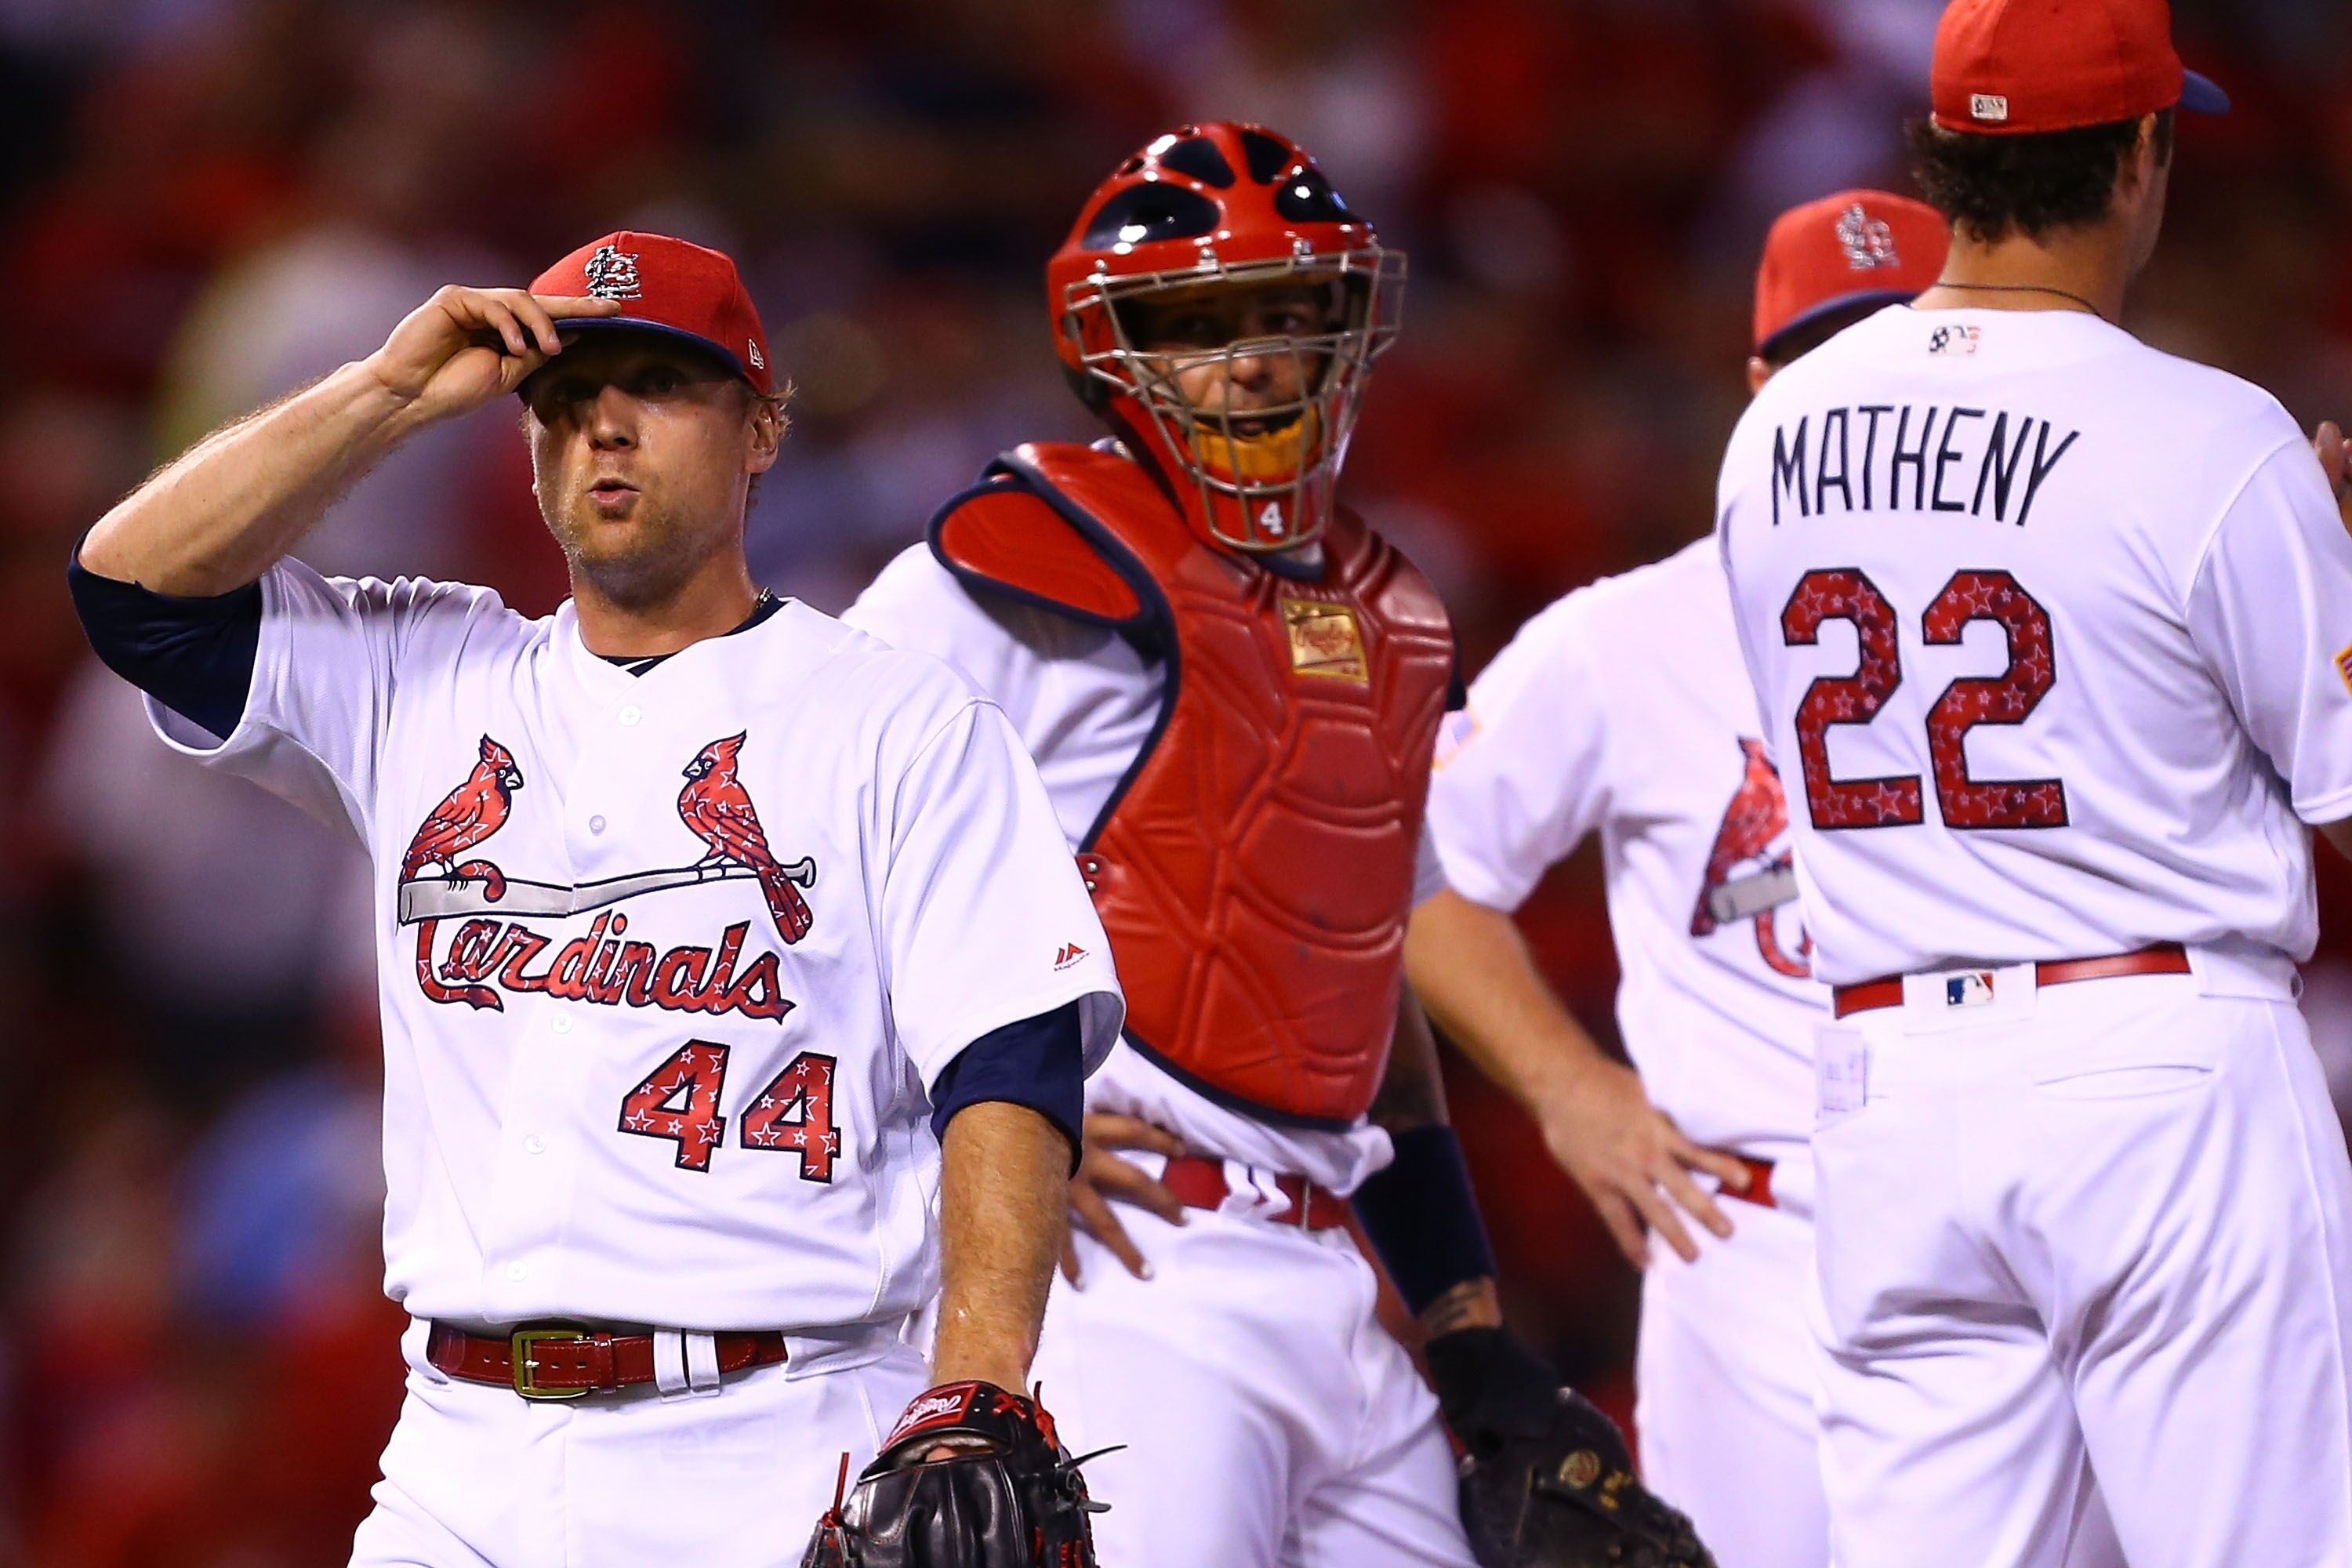 St. Louis Cardinals: Tommy John is no stranger to the Cardinals